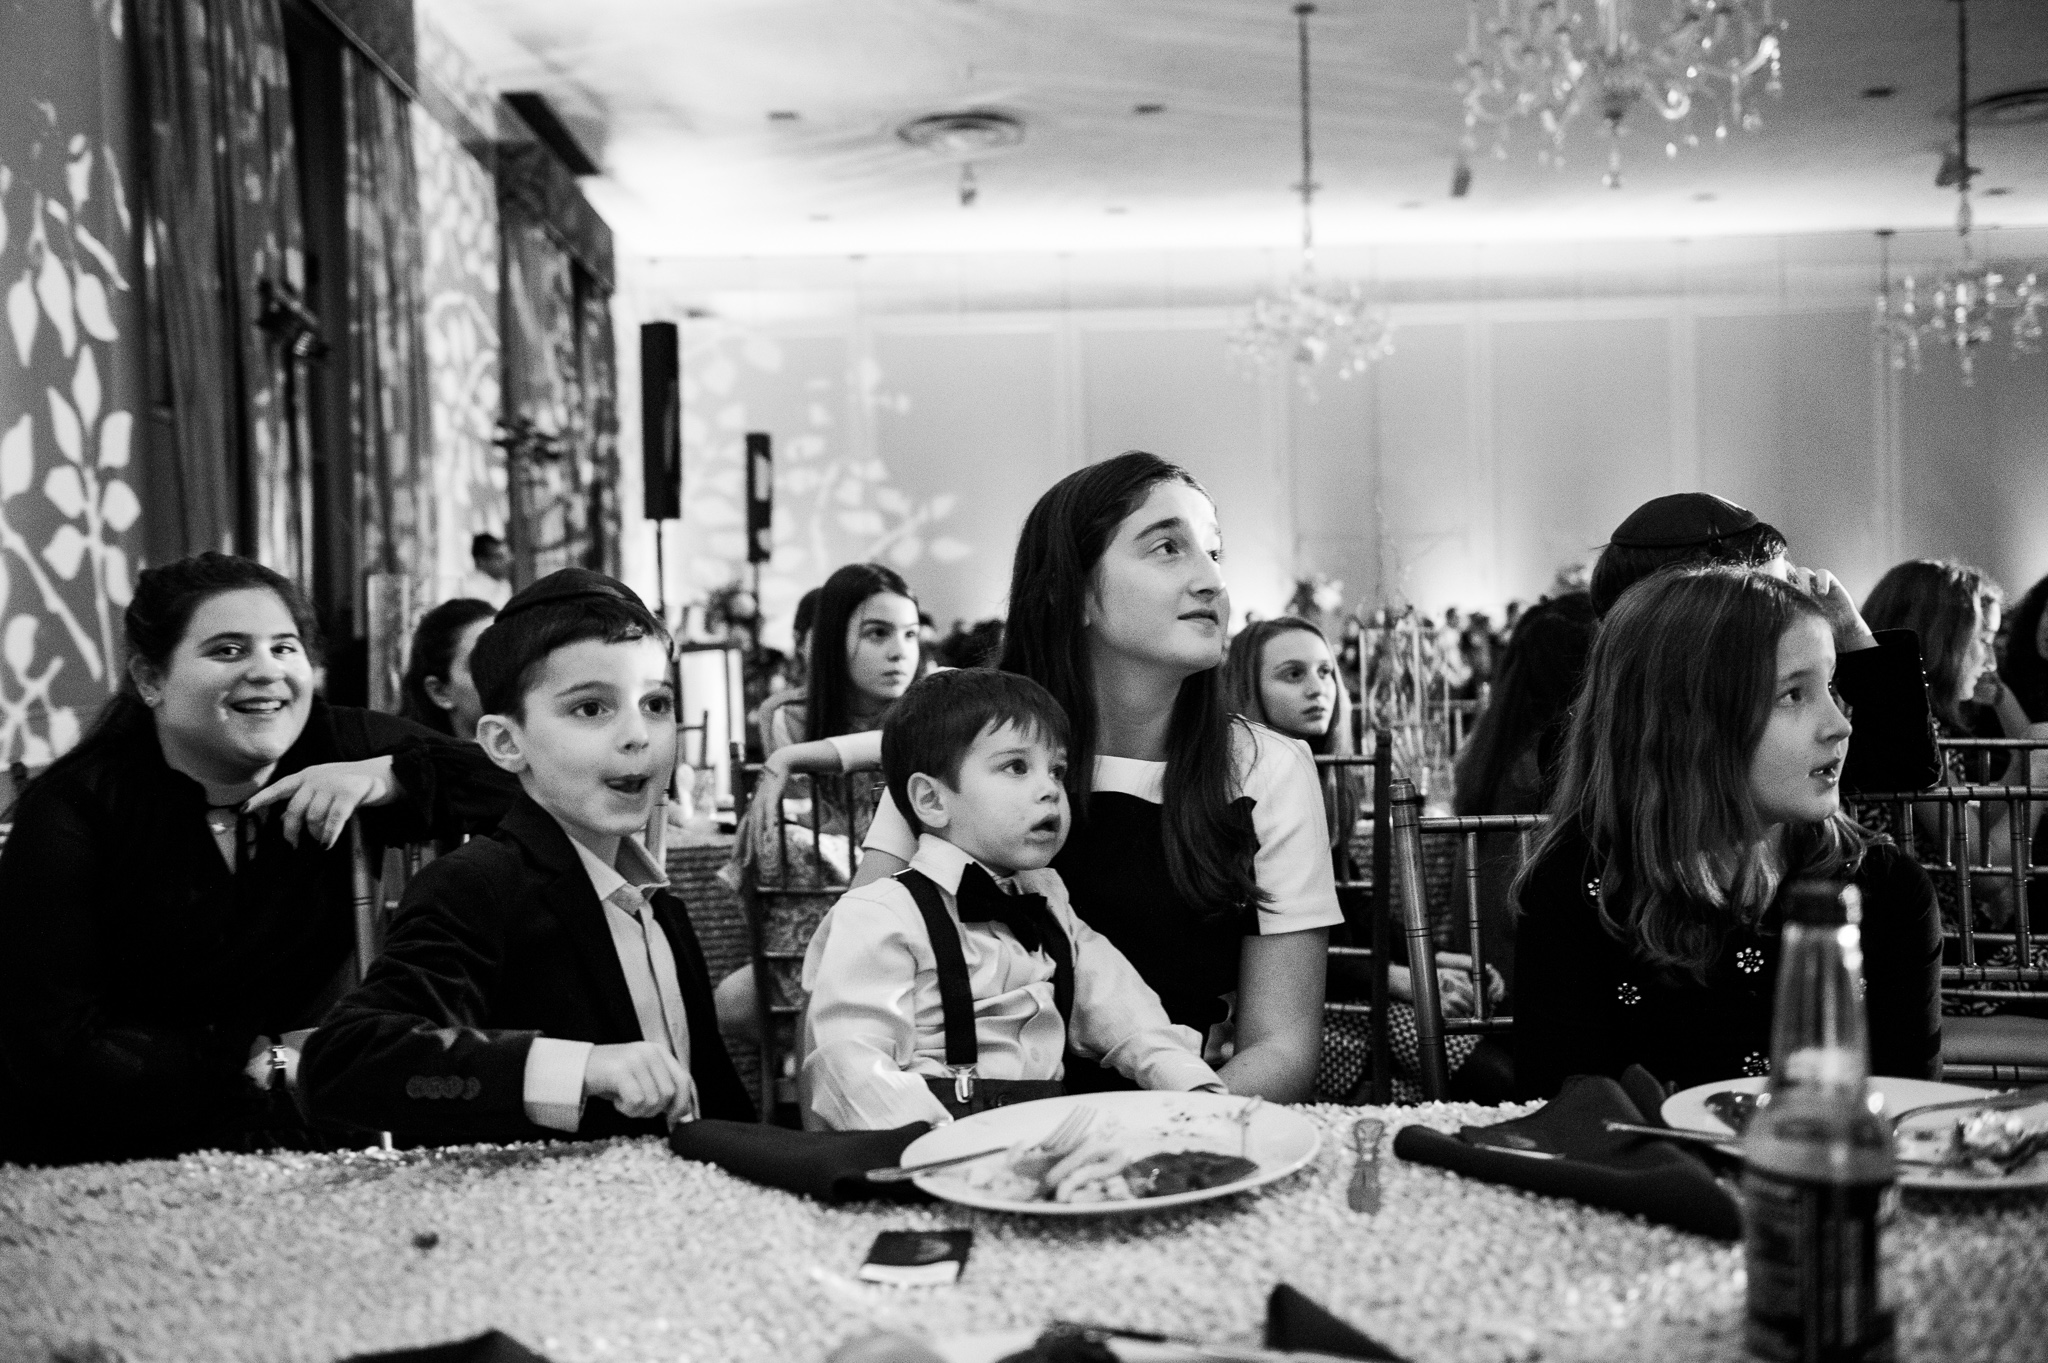 bat mitzvah event photographer Erin Borzellino